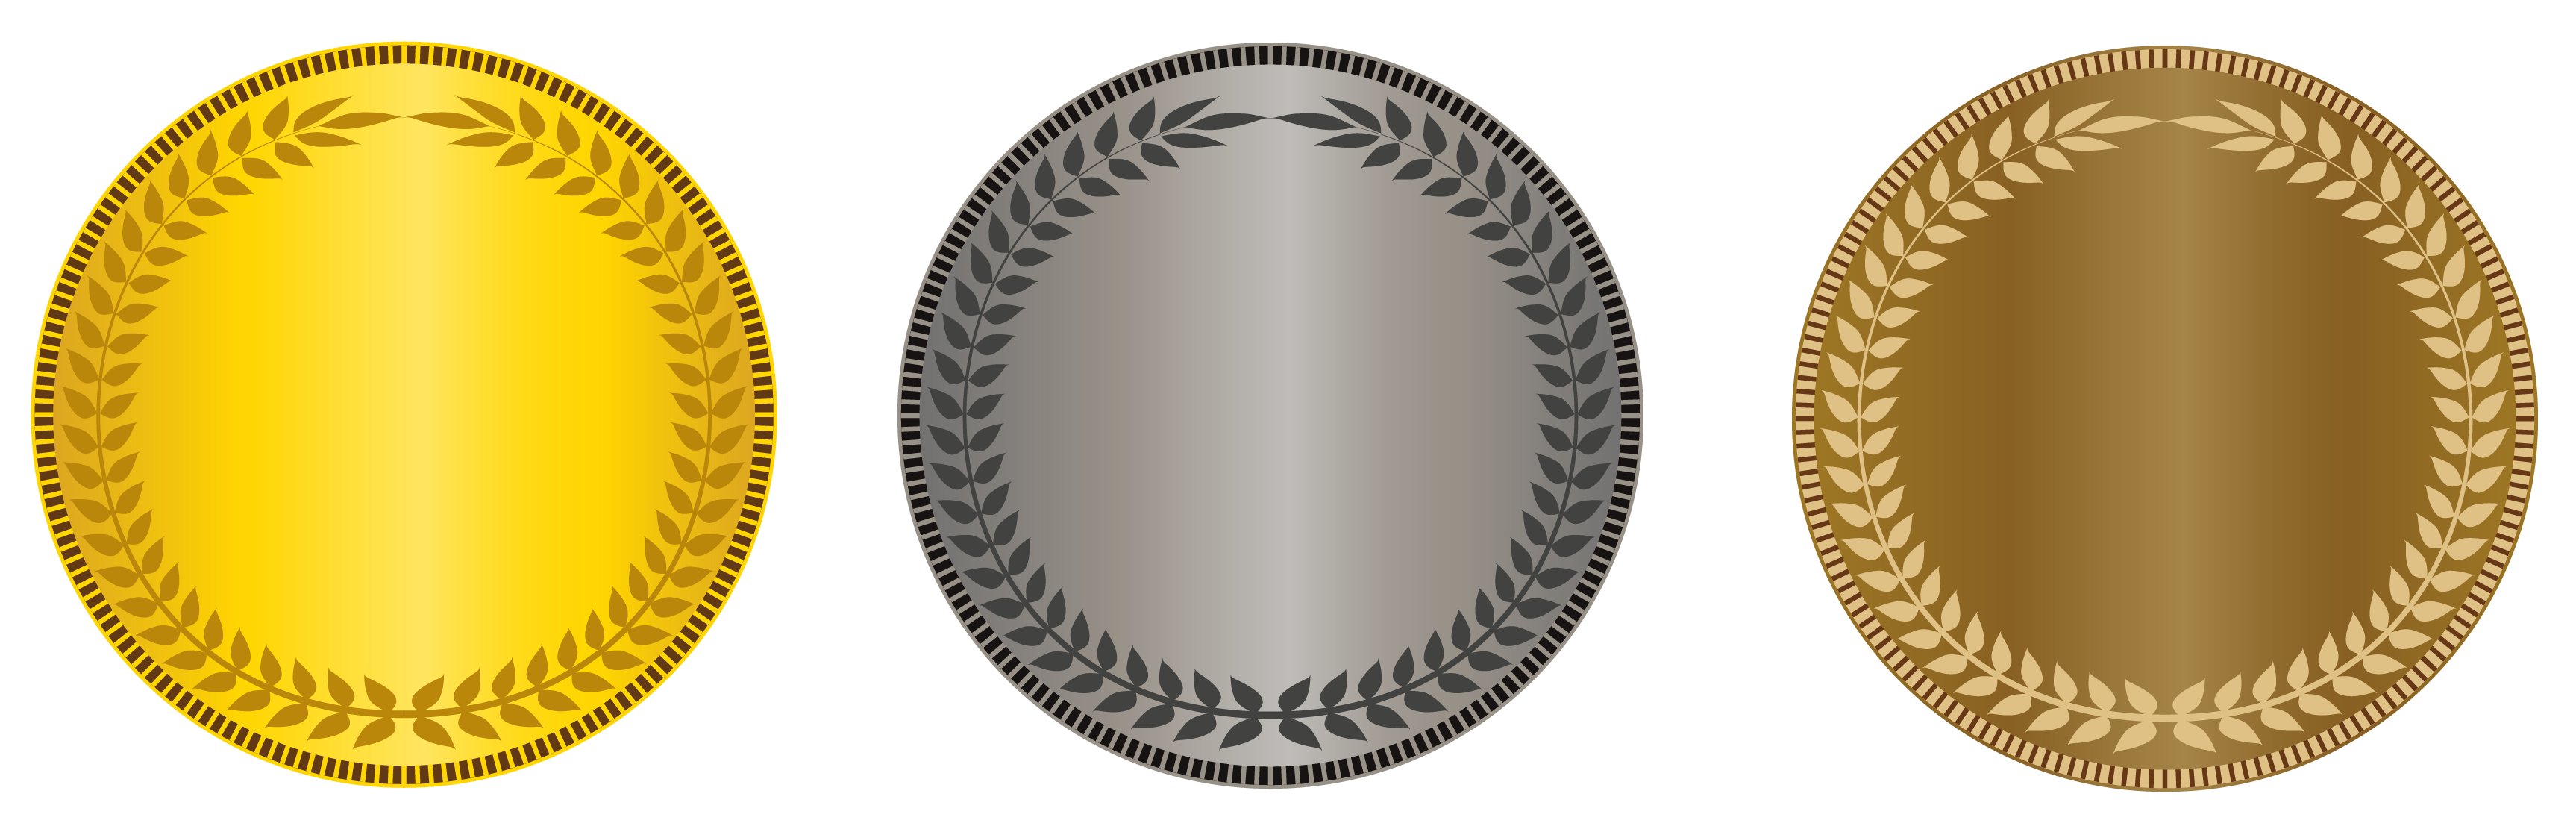 vector library Gold and silver clipart. Transparent bronze medals png